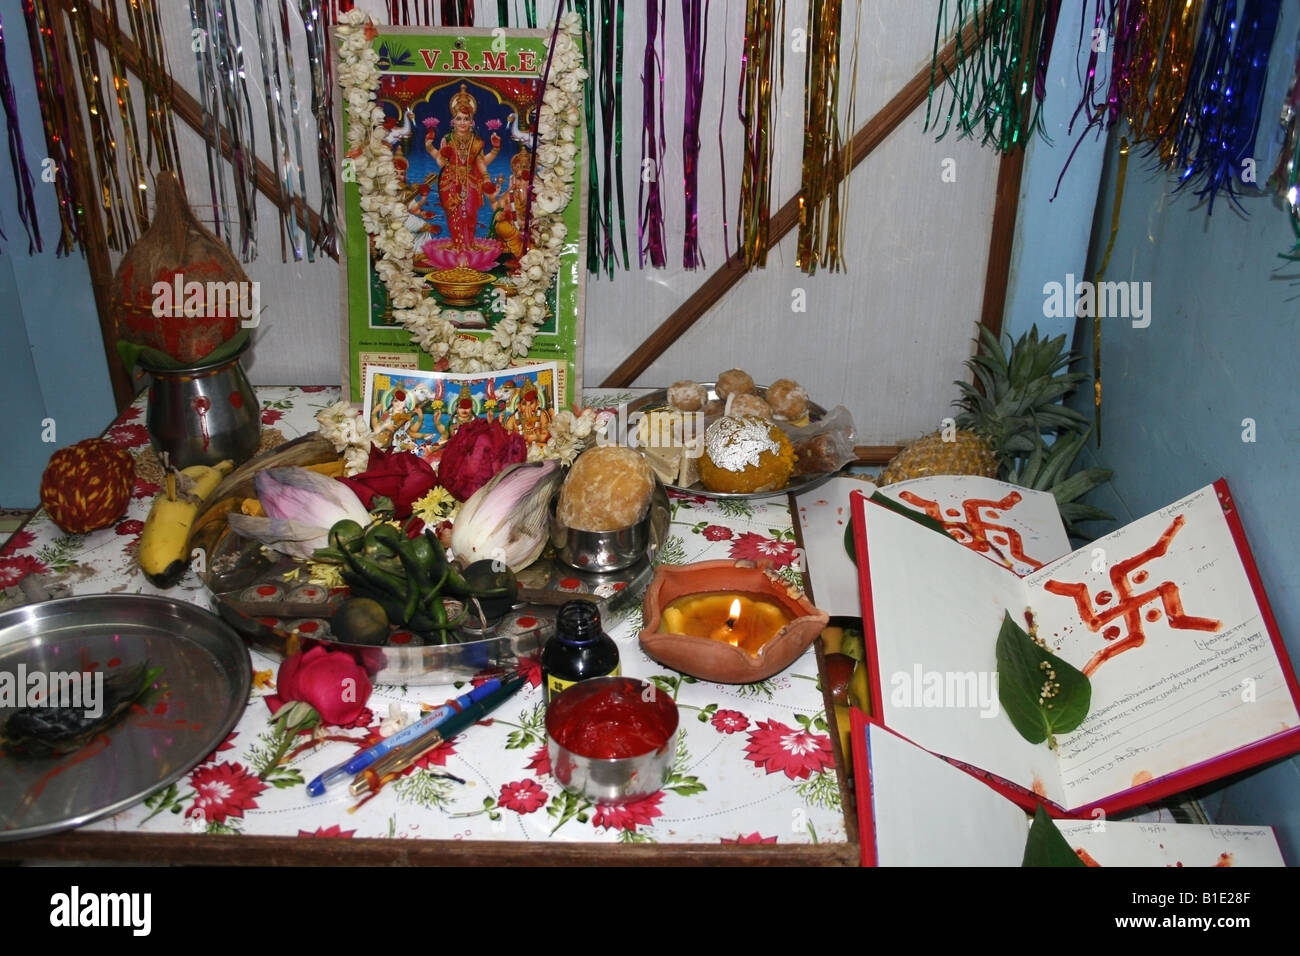 Shrine With Offerings To The Hindu Goddess Lakshmi For